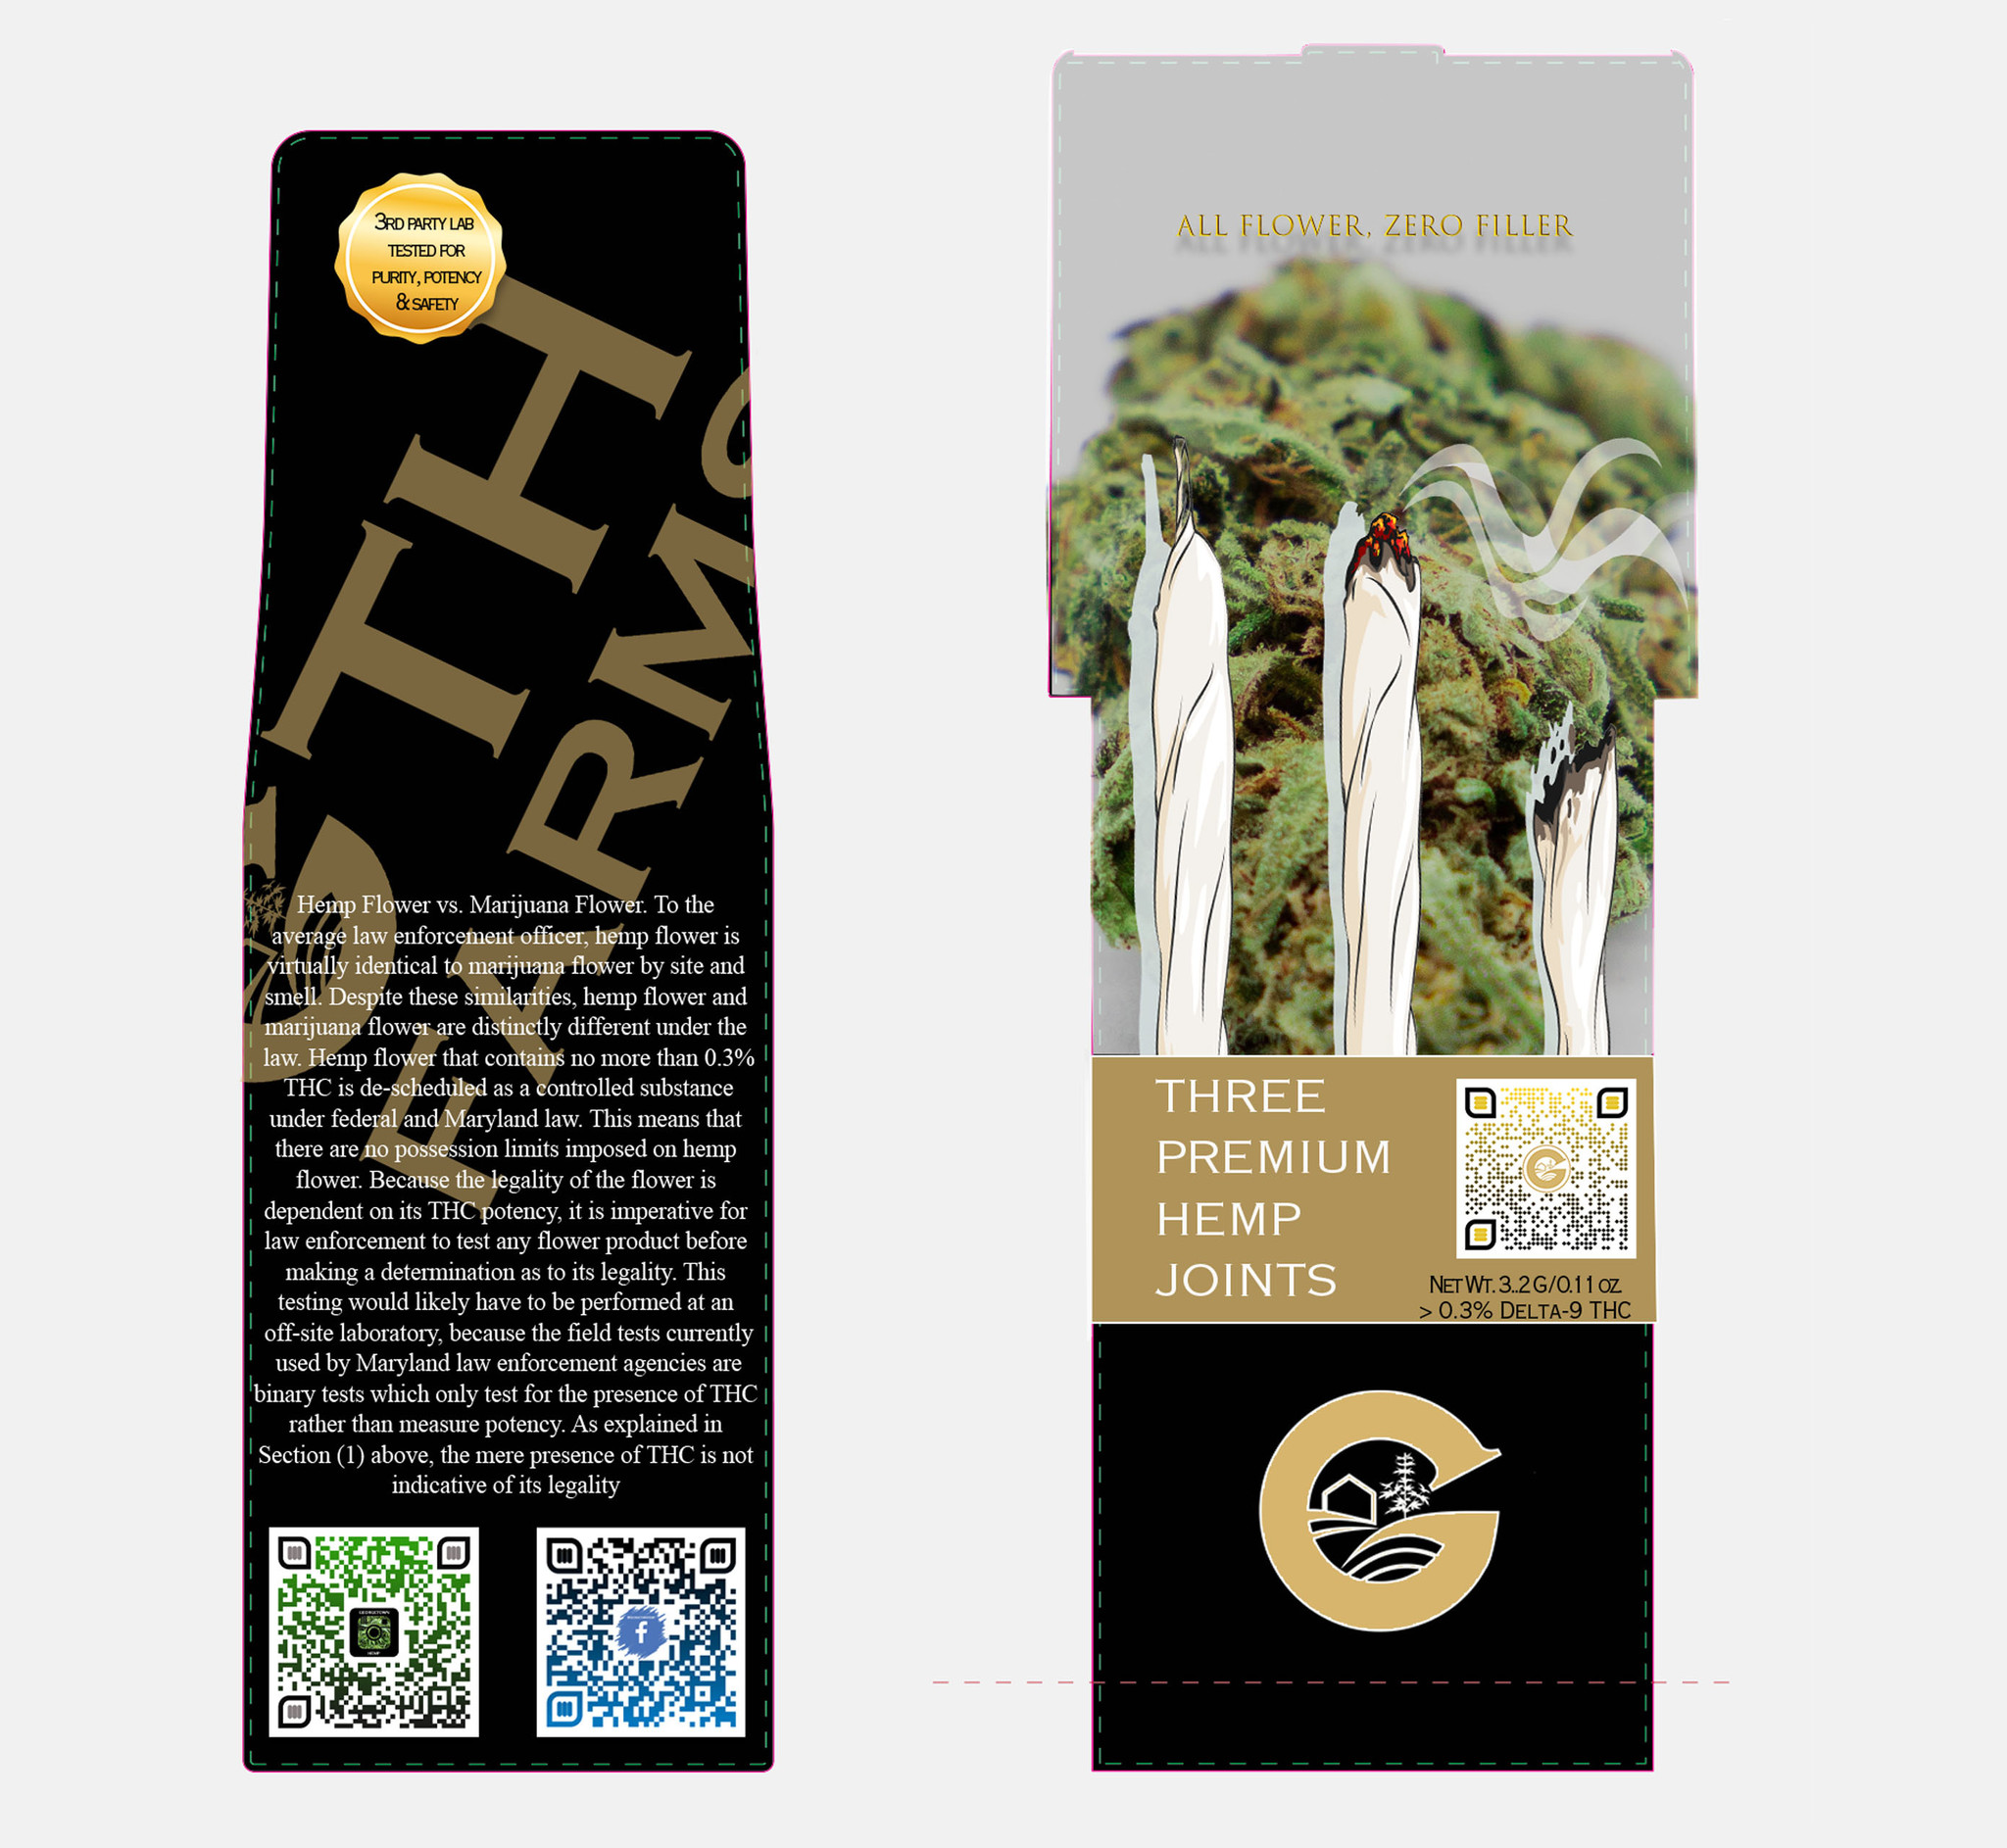 Georgetown Hemp | EXCLUSIVE | GTH FARMS | THE G-PACK | 3-PACK | MAD SCIENTIST (MS) 22.8% |